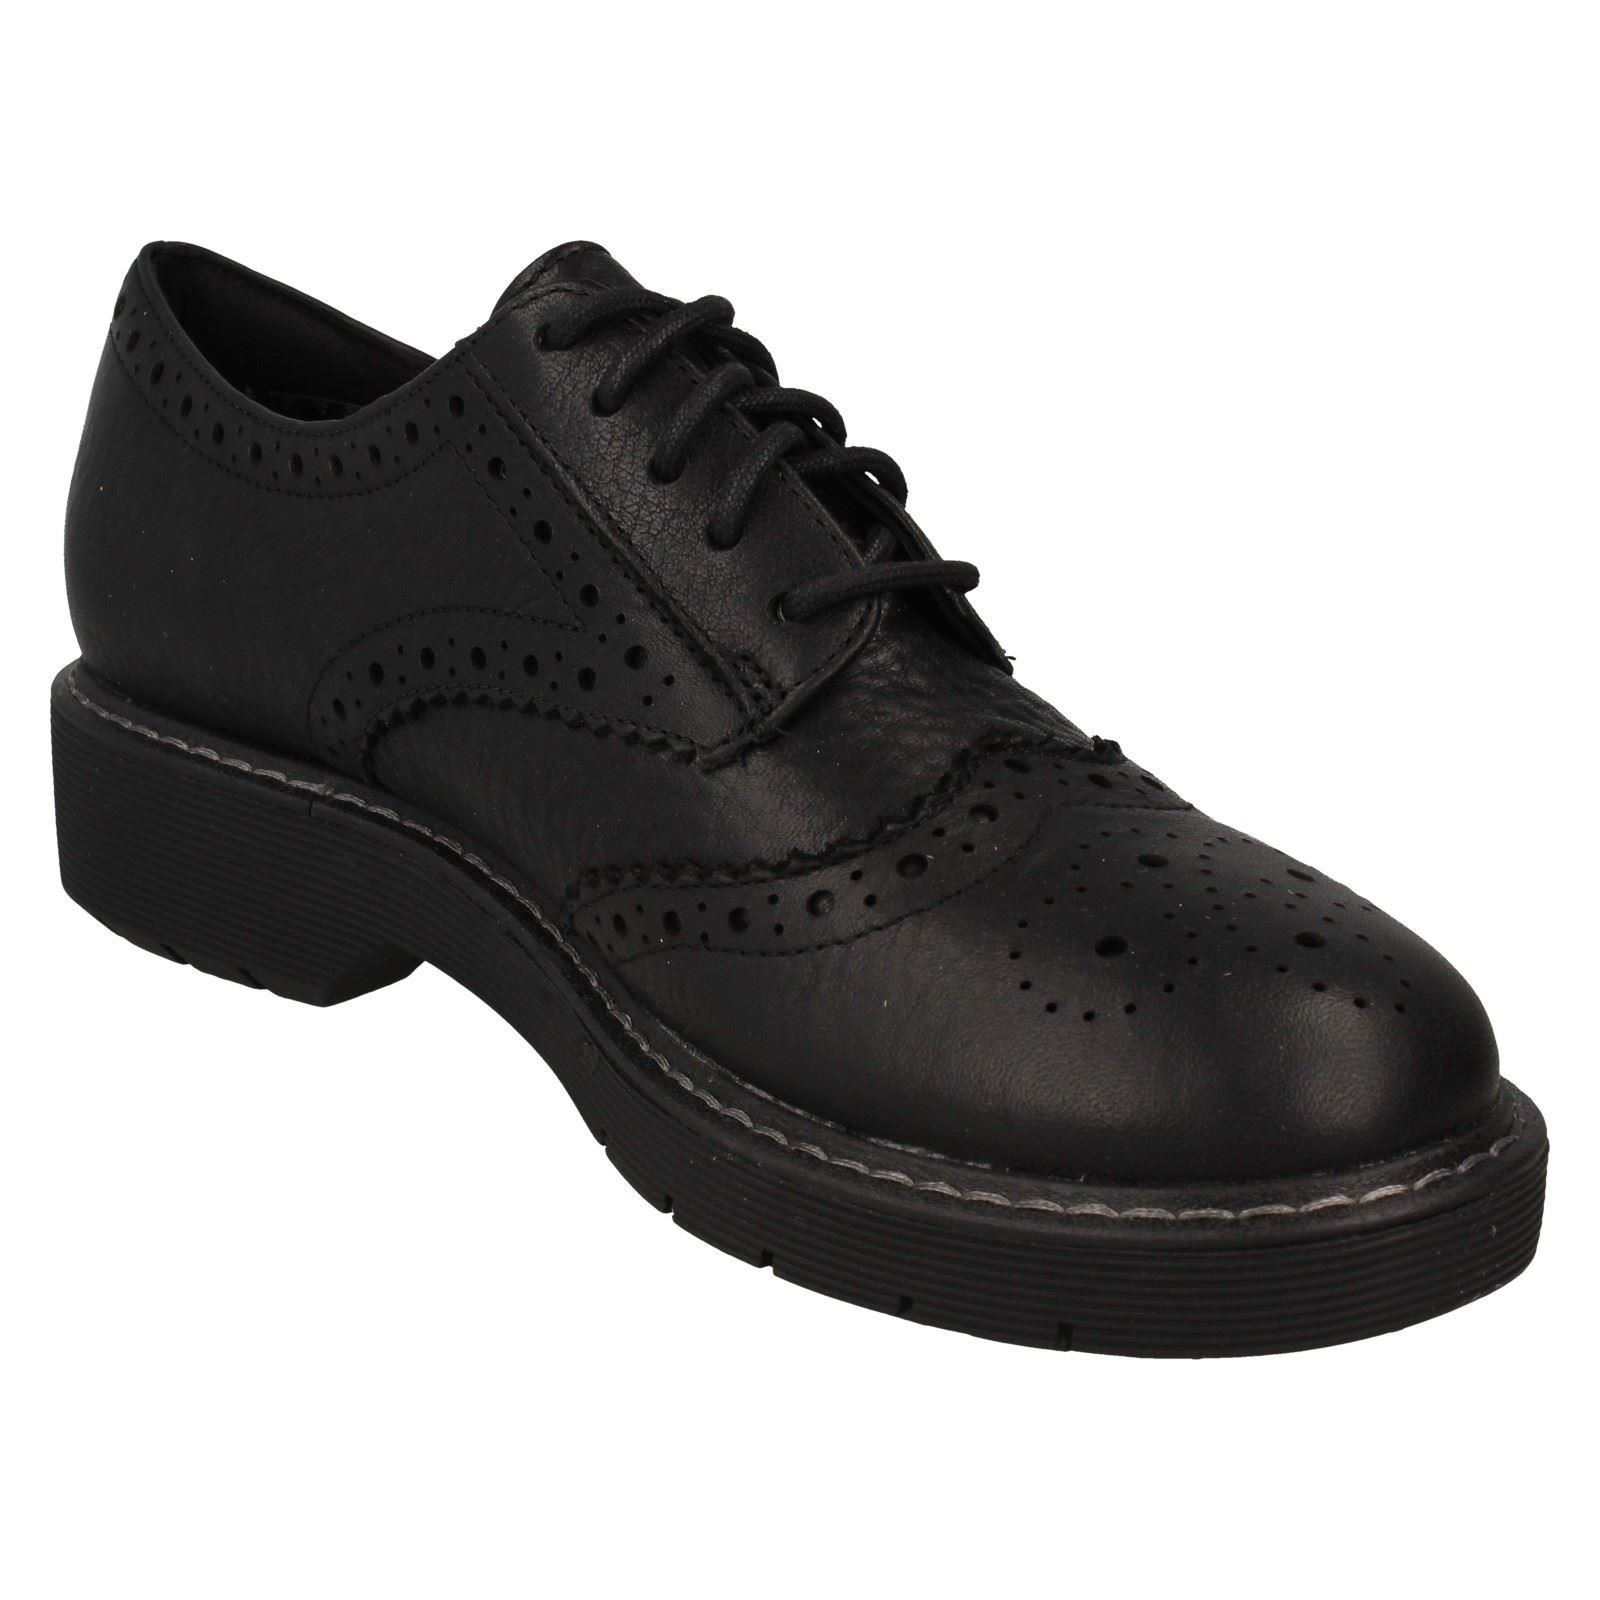 LADIES CLARKS LEATHER CASUAL WORK CHUNKY BROGUE LACE UP SHOES SIZE WITCOMBE ECHO